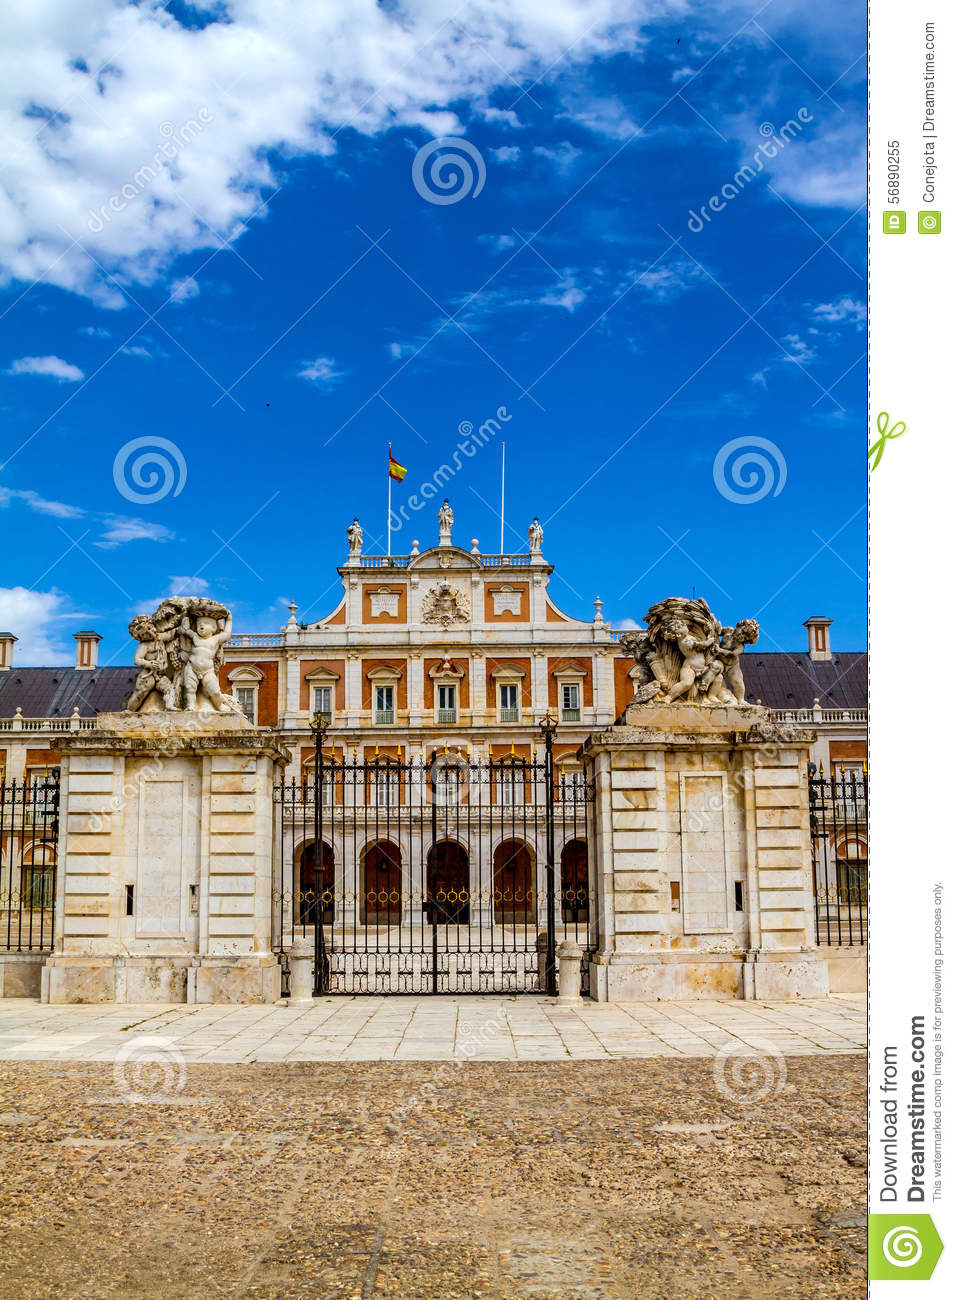 Royal Palace di Aranjuez